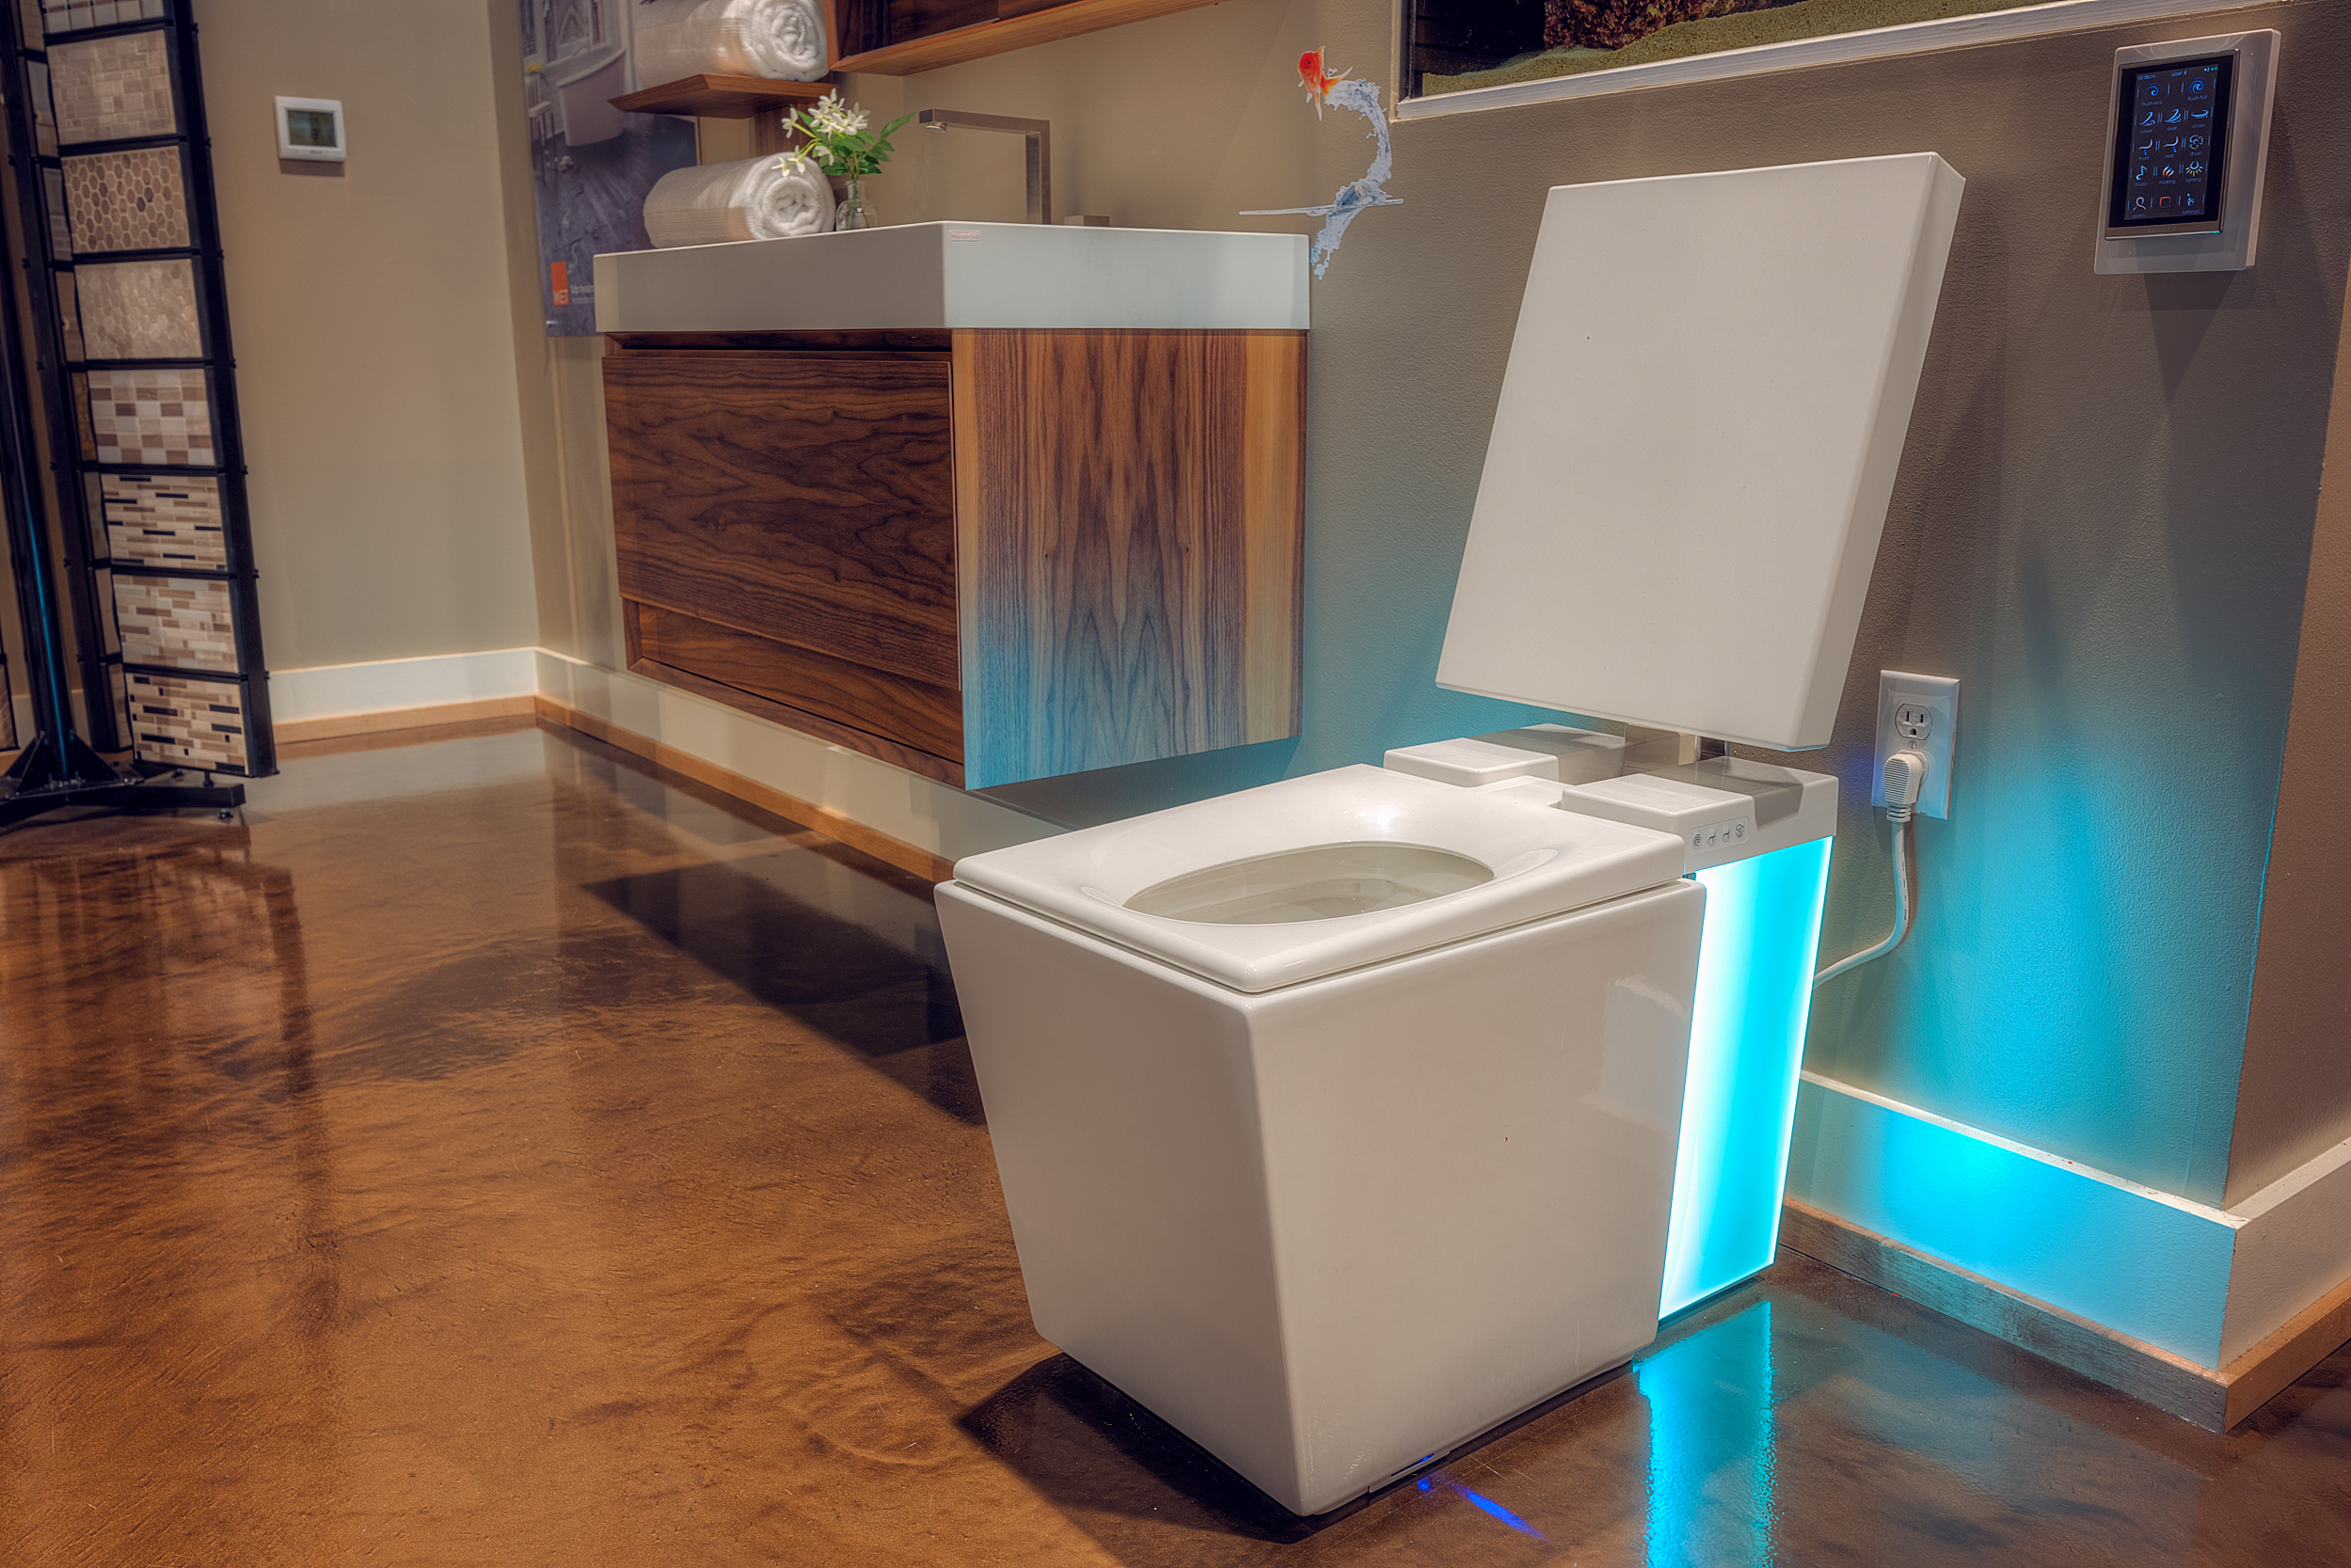 This 6000 INTELLIGENT TOILET Is The Self Warming Bluetooth